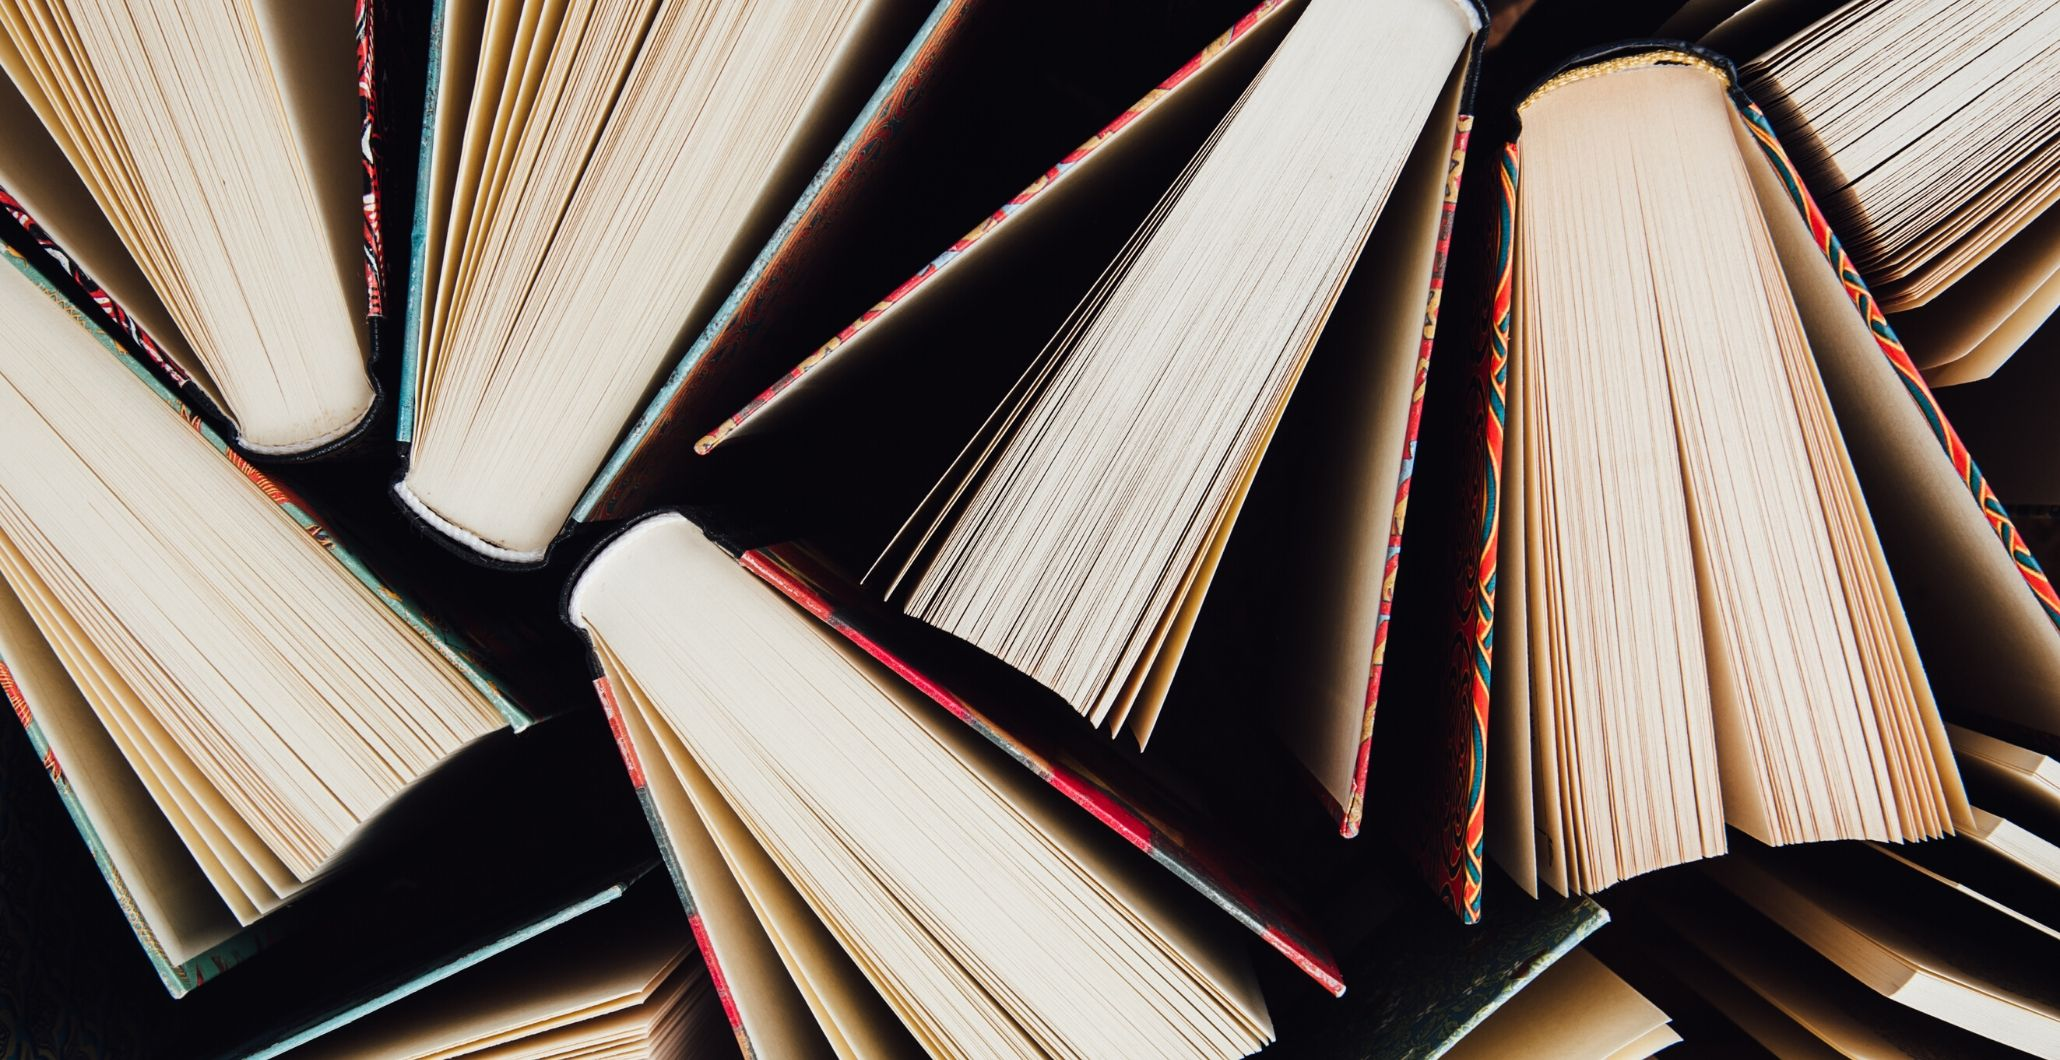 (More!) Overlooked Books